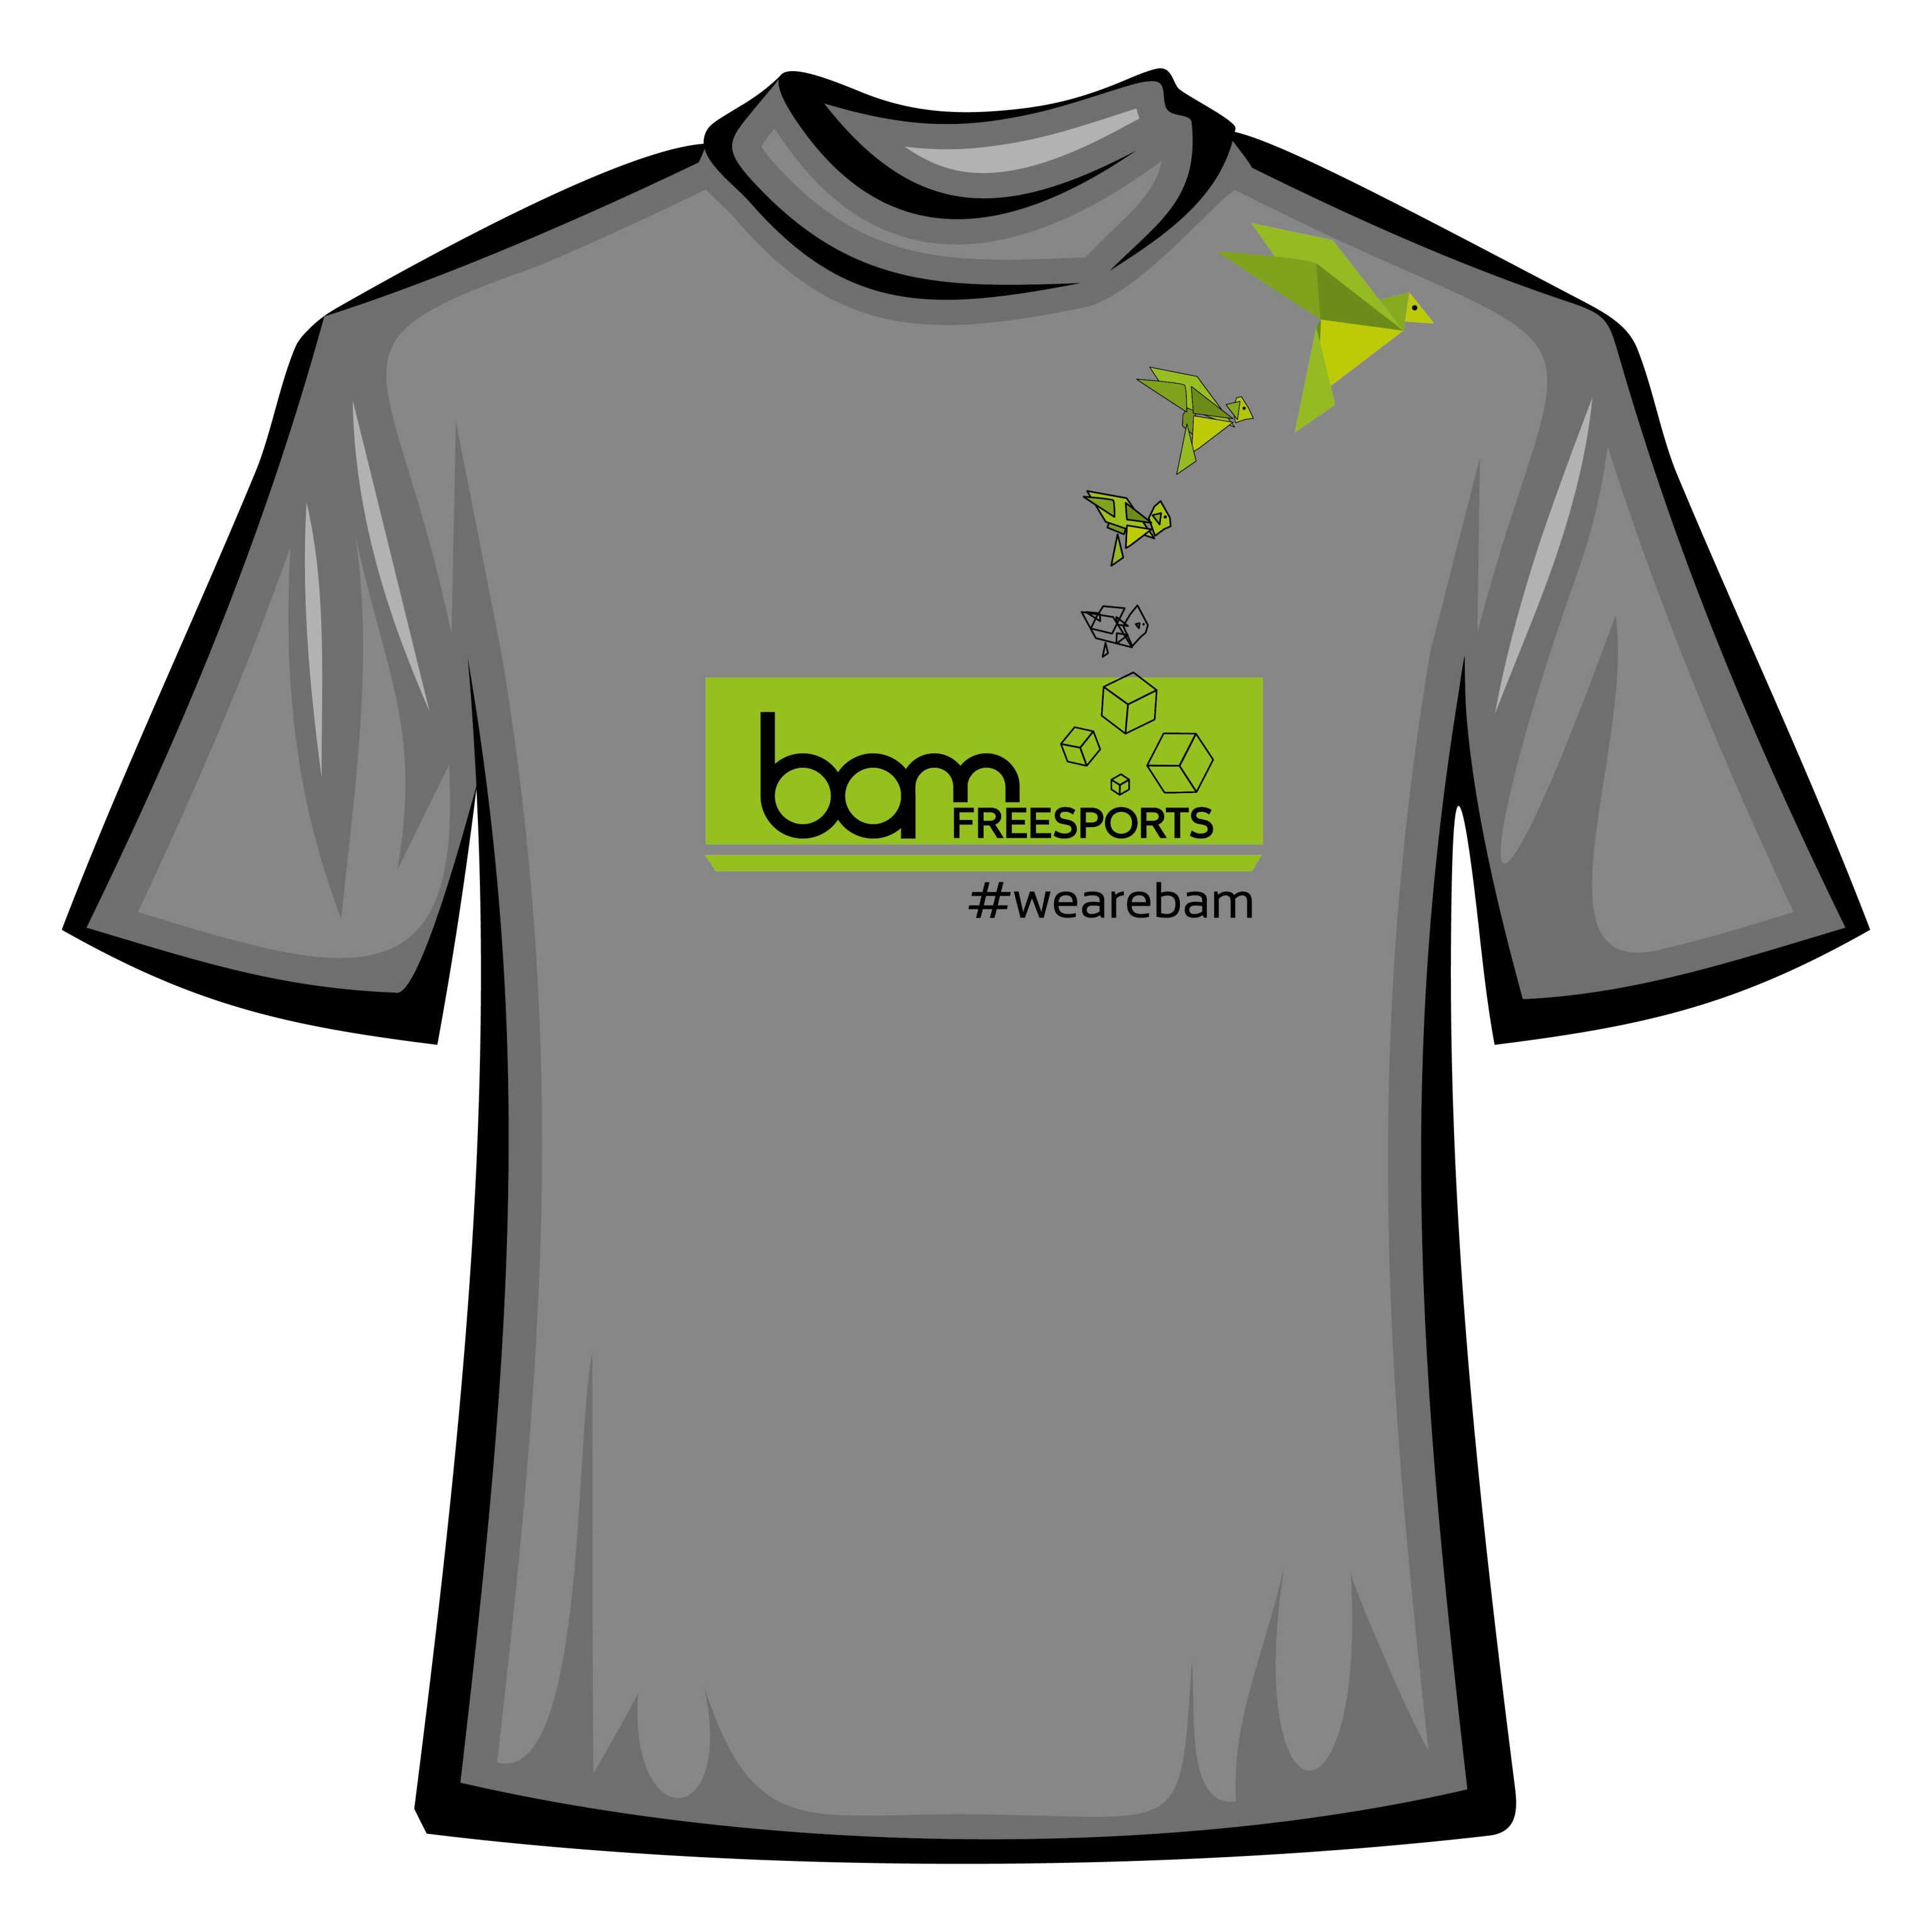 T-shirt #wearebam